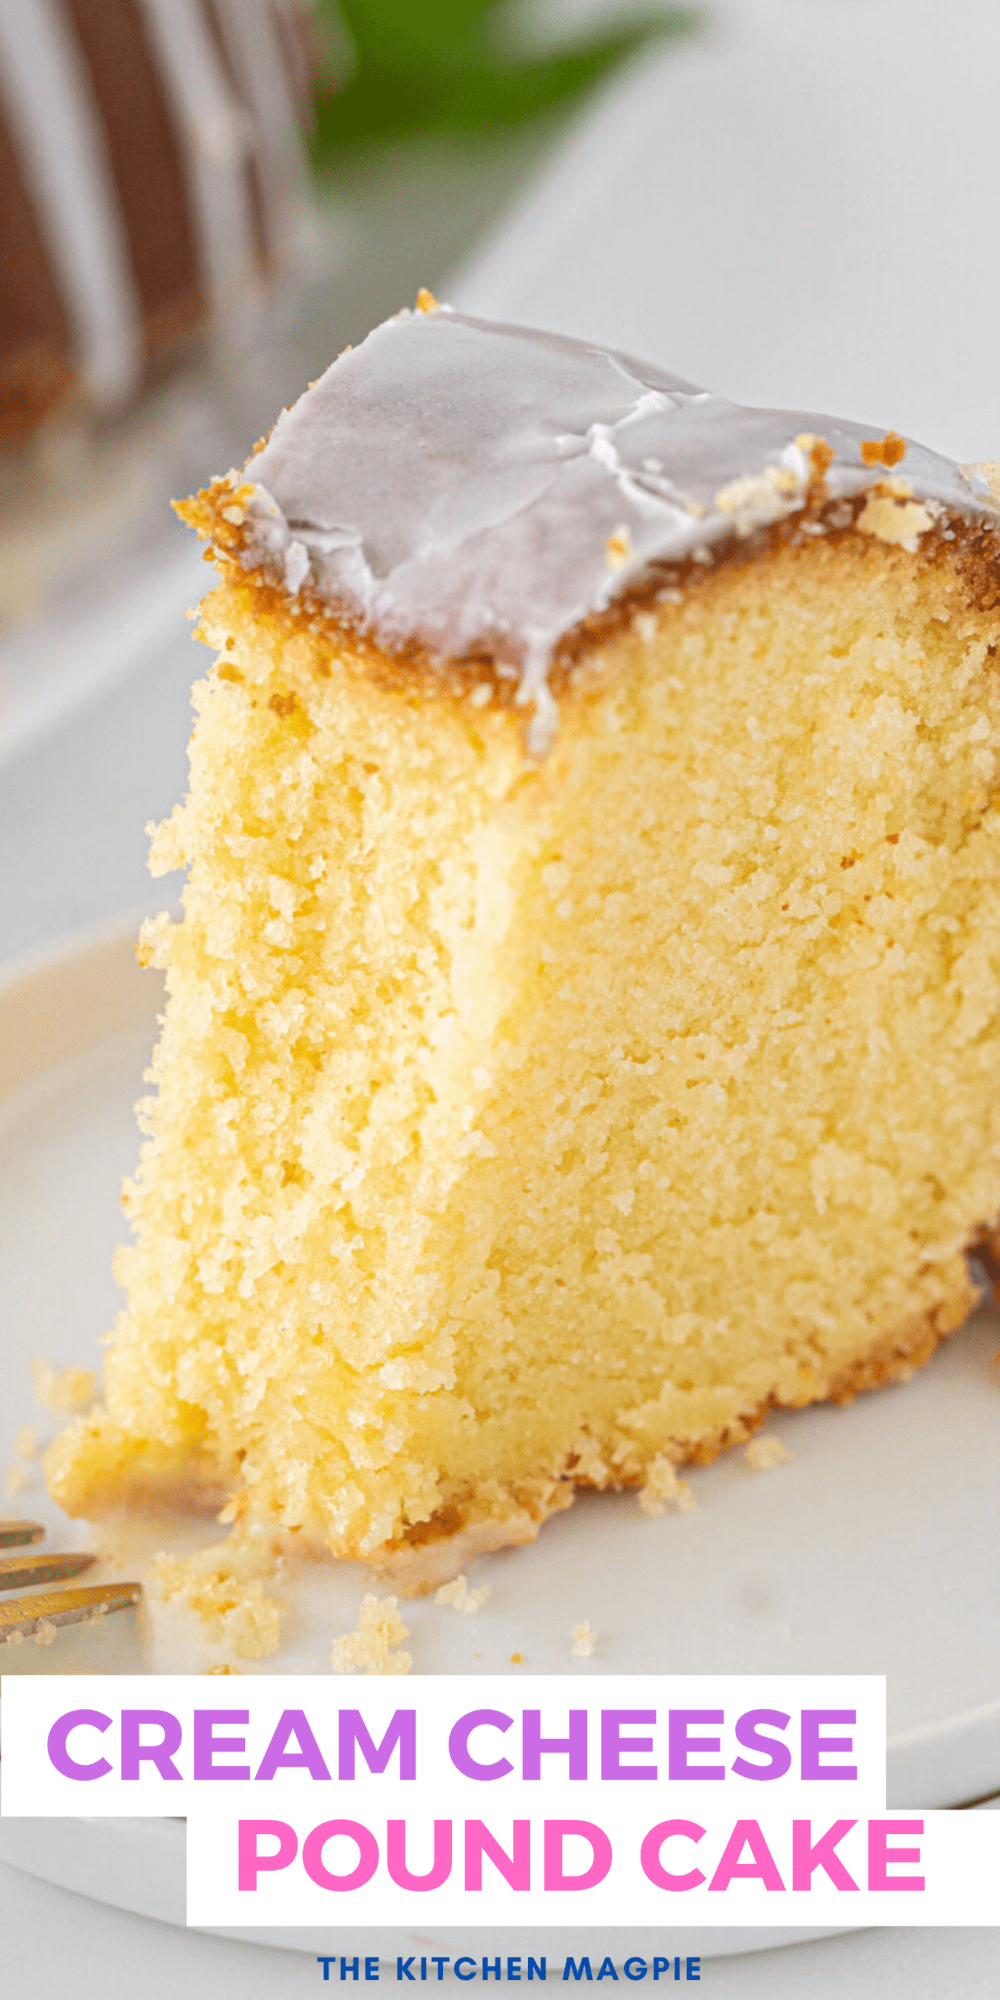 The classic cream cheese pound cake recipe was made for every church function when I was growing up! A delicious, dense pound cake made better with a cold start oven method!